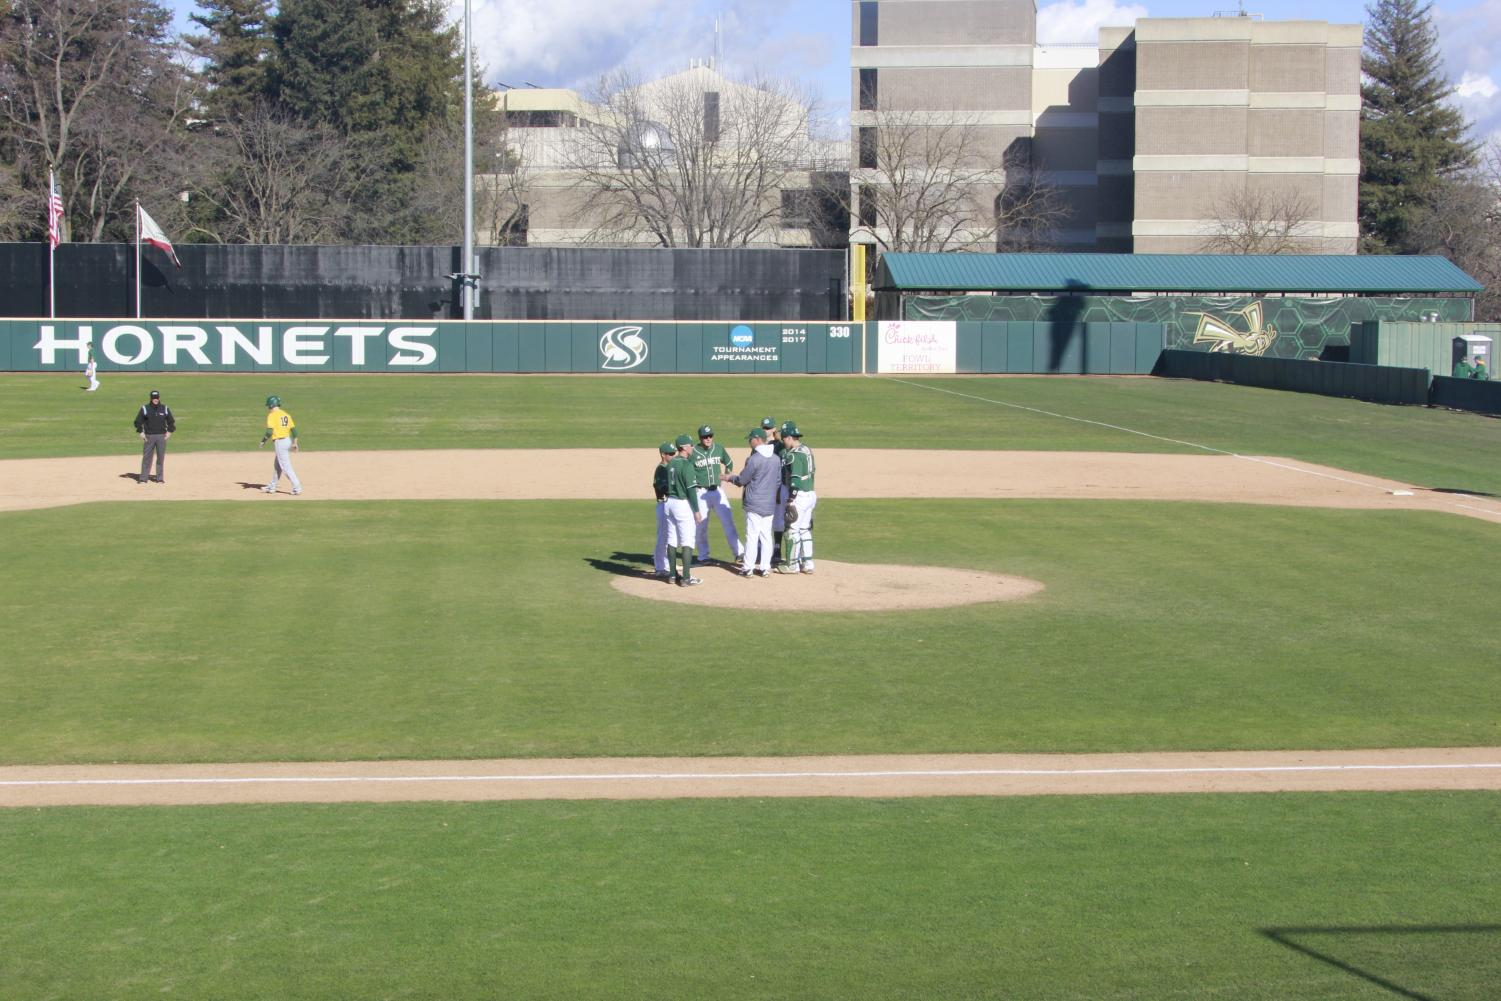 Members+of+the+Sac+State+baseball+team+gather+on+the+pitchers+mound+during+a+2-1+win+over+North+Dakota+St.+on+Sunday%2C+Feb.+17+at+John+Smith+Field.